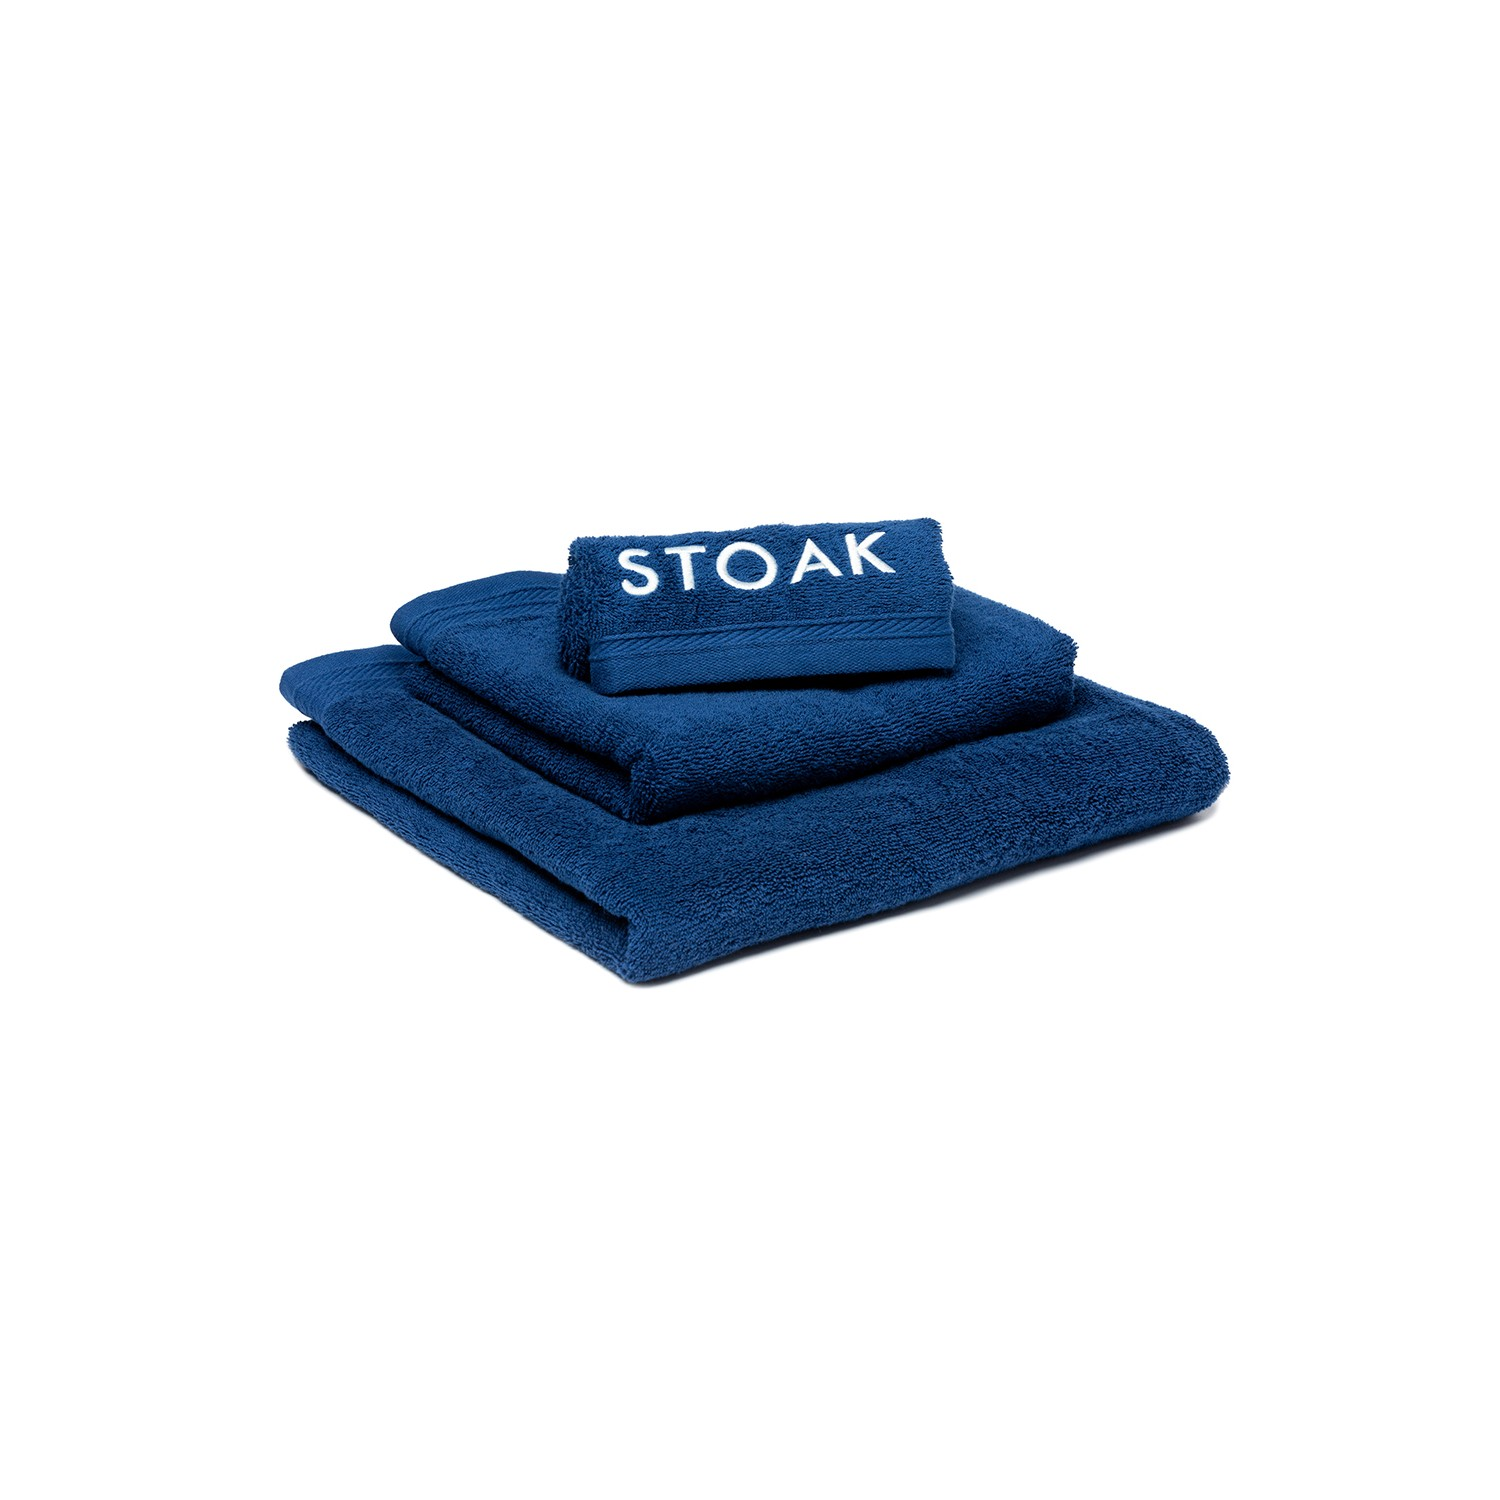 STOAK DEEP SEA TOWEL (Organic Cotton)